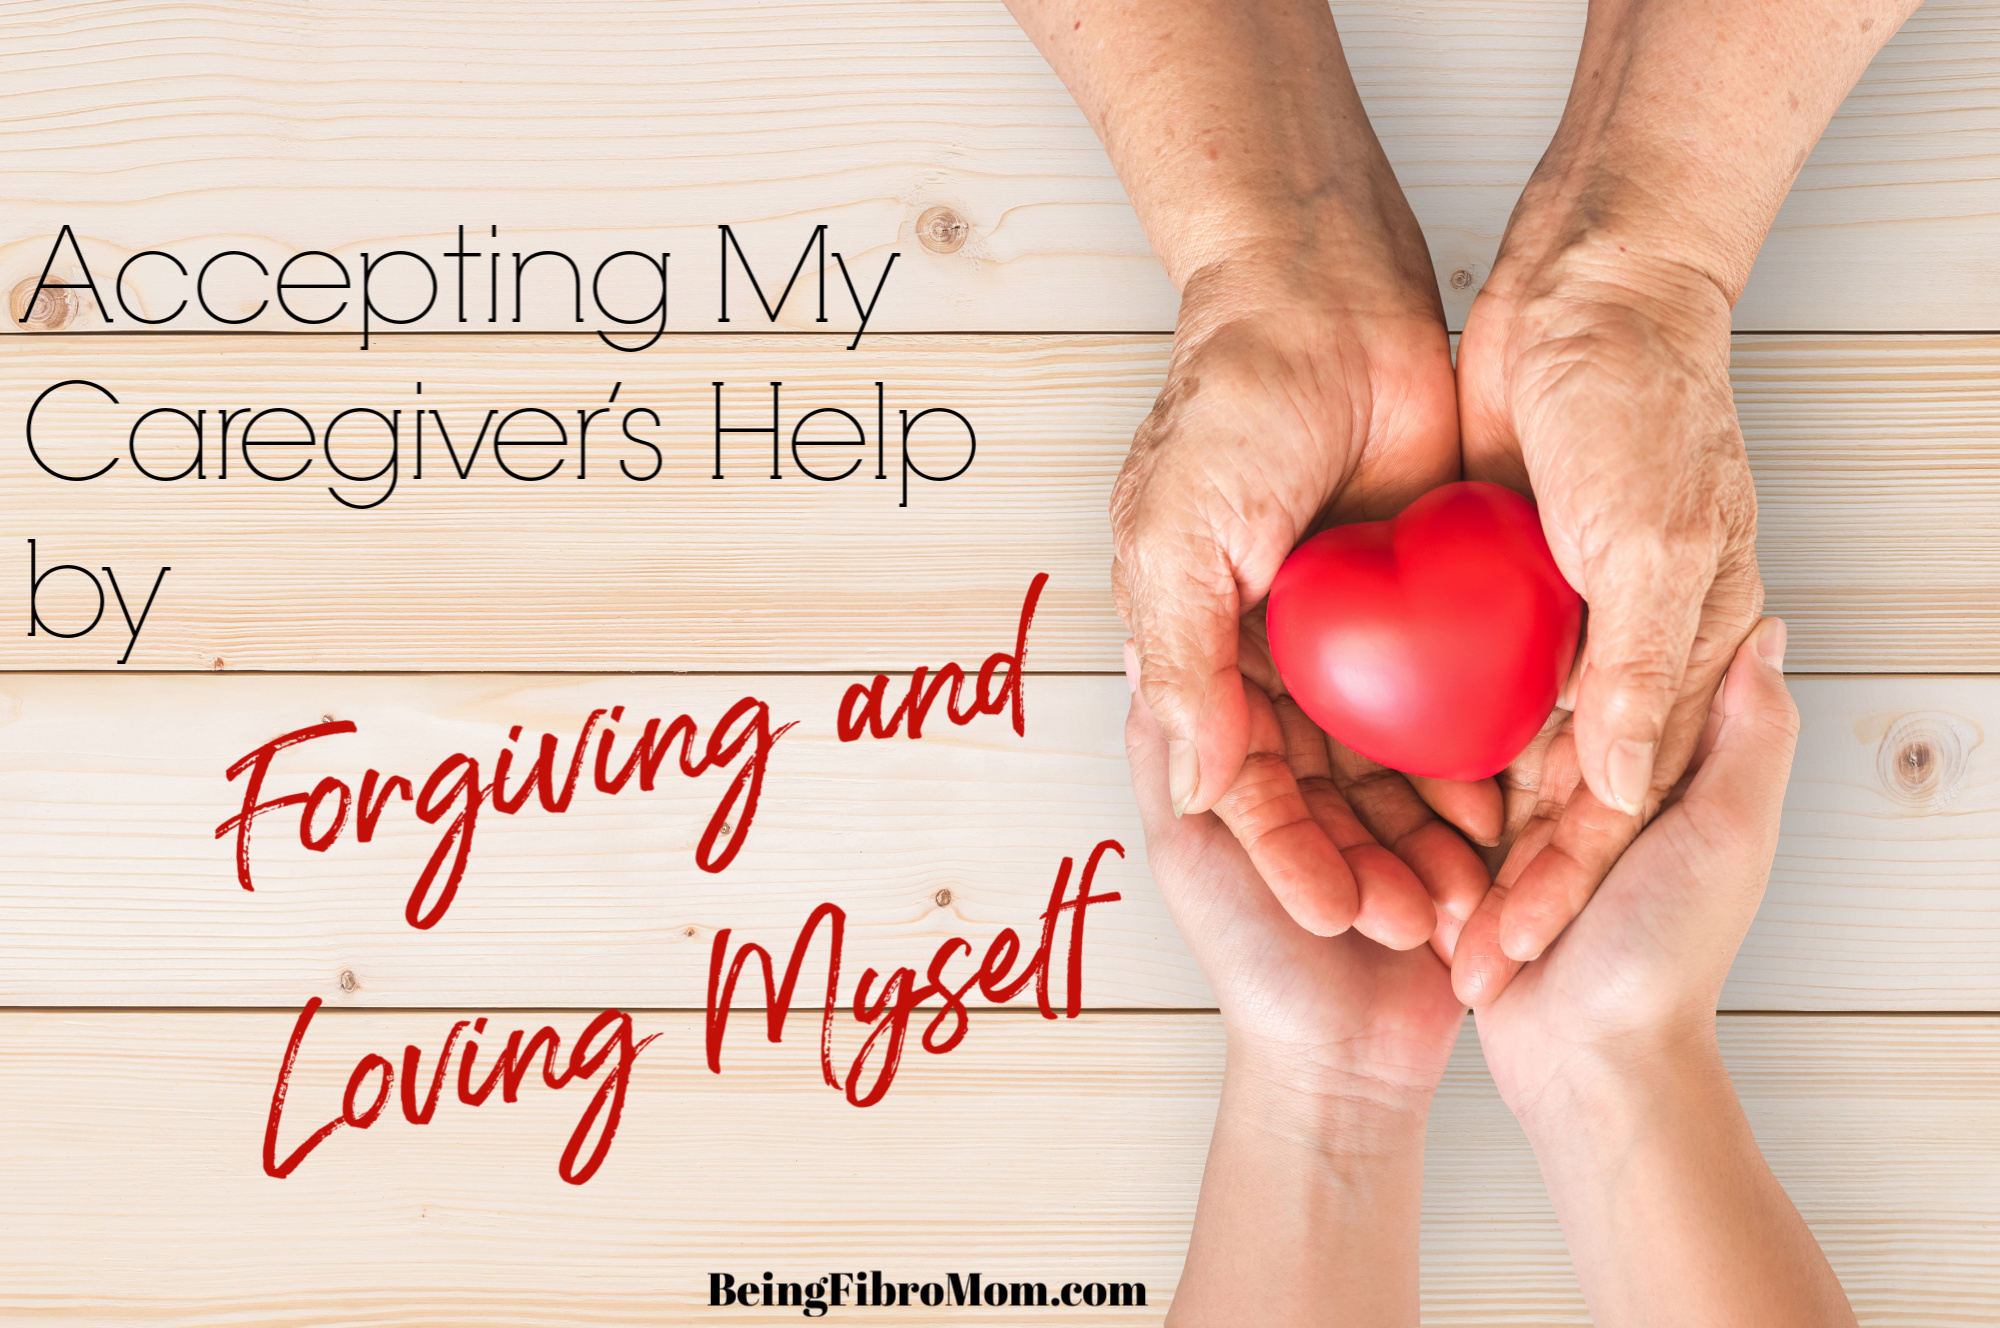 Accepting My Caregiver's Help by Forgiving and Loving Myself